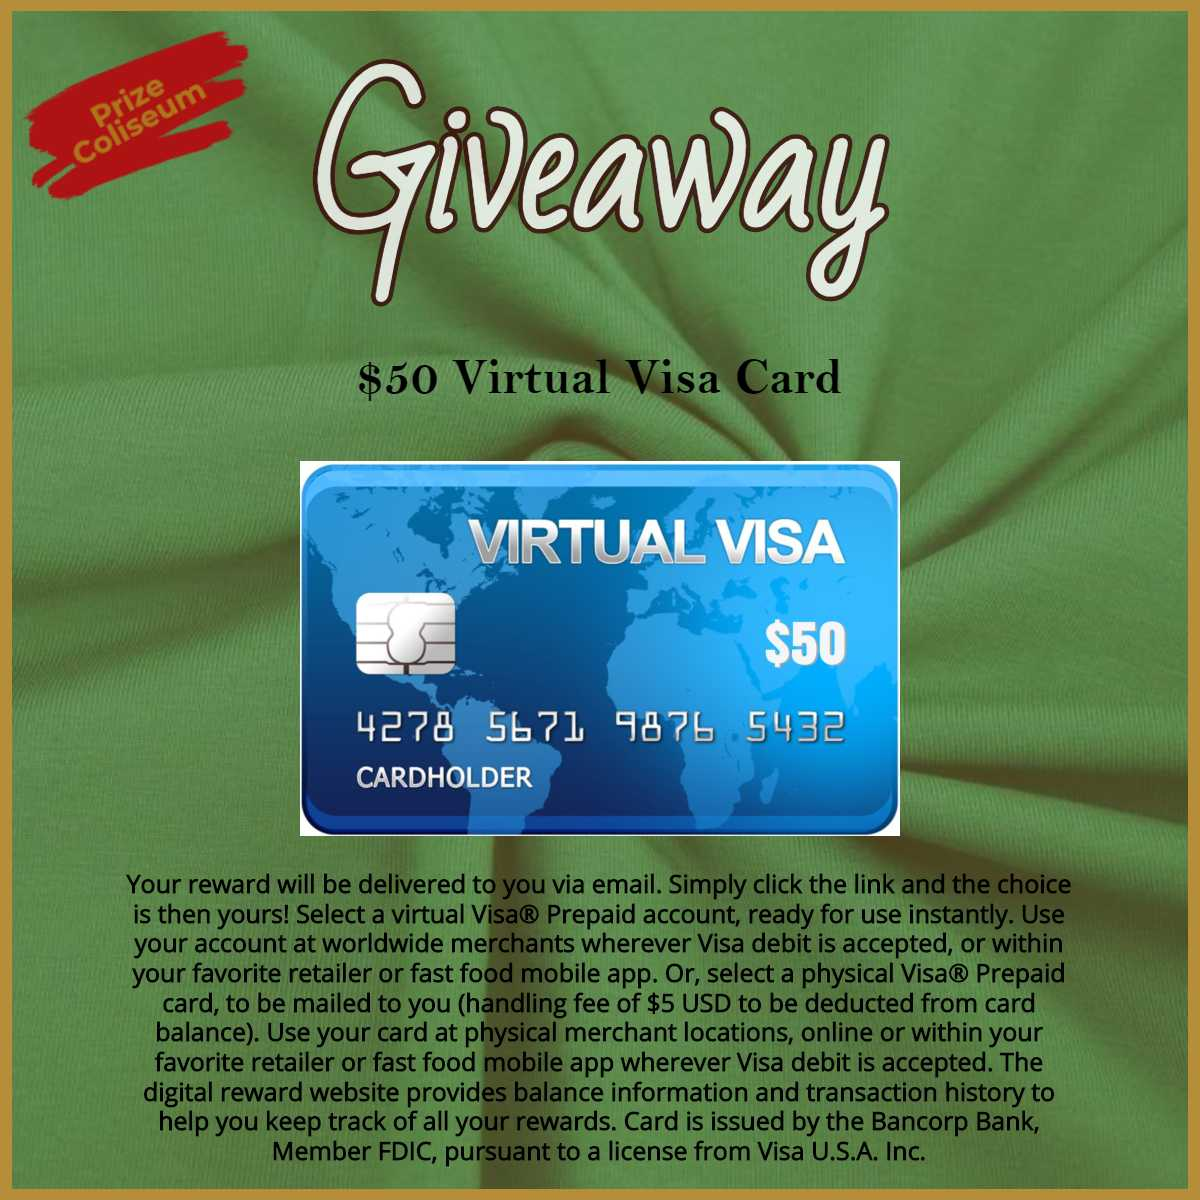 Enter for a chance to win a $50 Virtual Visa Card from PrizeColiseum Giveaway Image